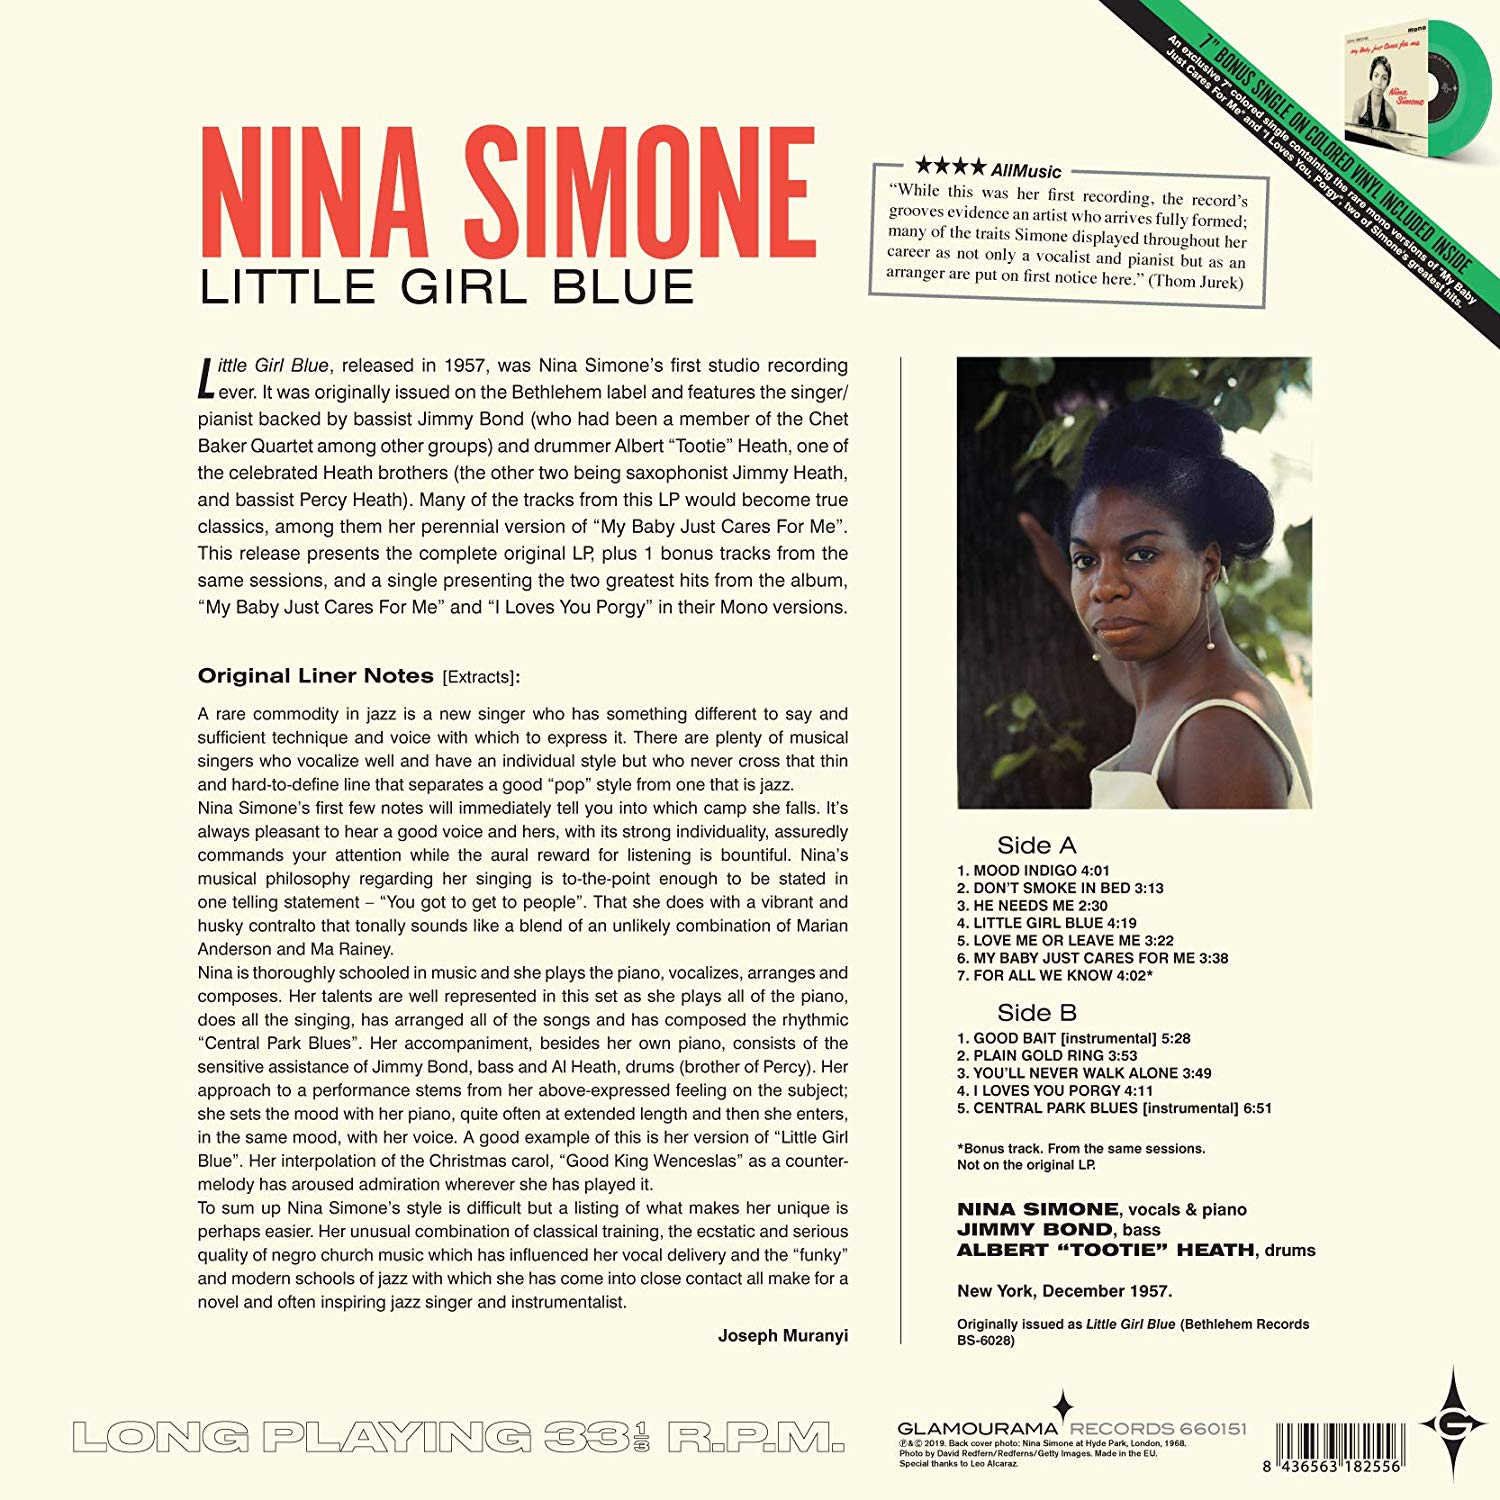 LITTLE GIRL BLUE + An Exclusive 7-inch Colored Single